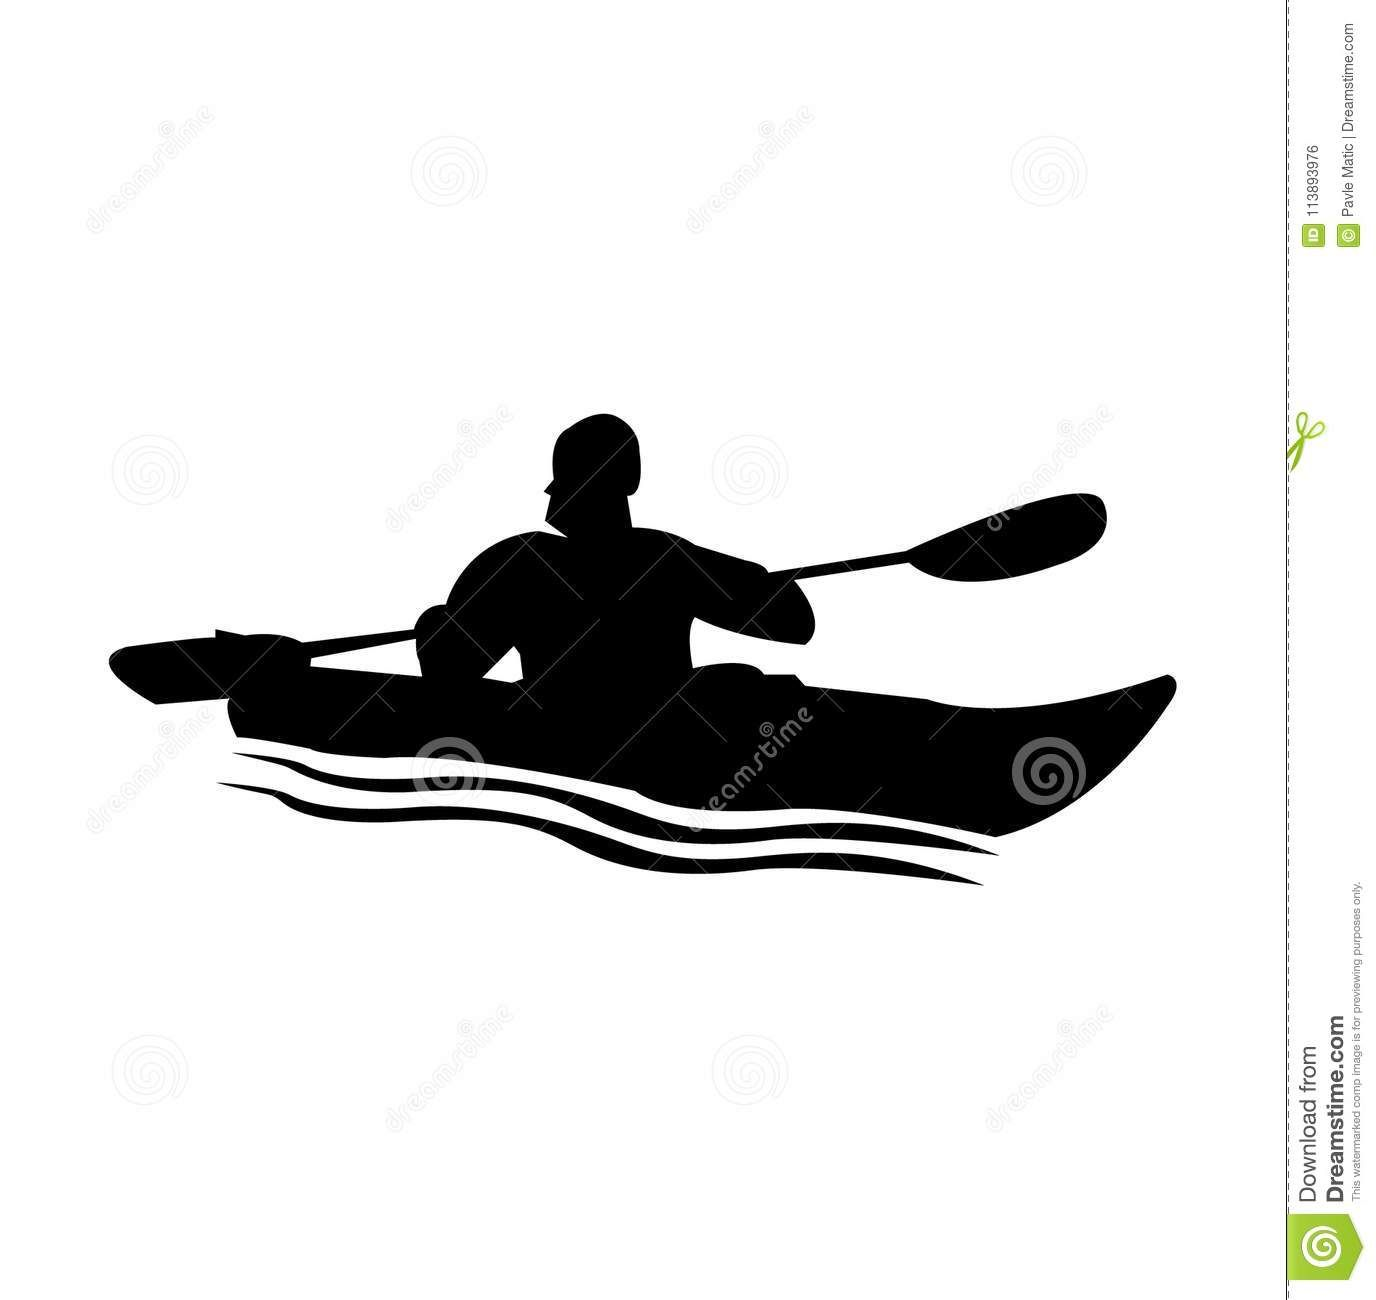 Person In A Kayak Silhouette Stock Vector Illustration Of River